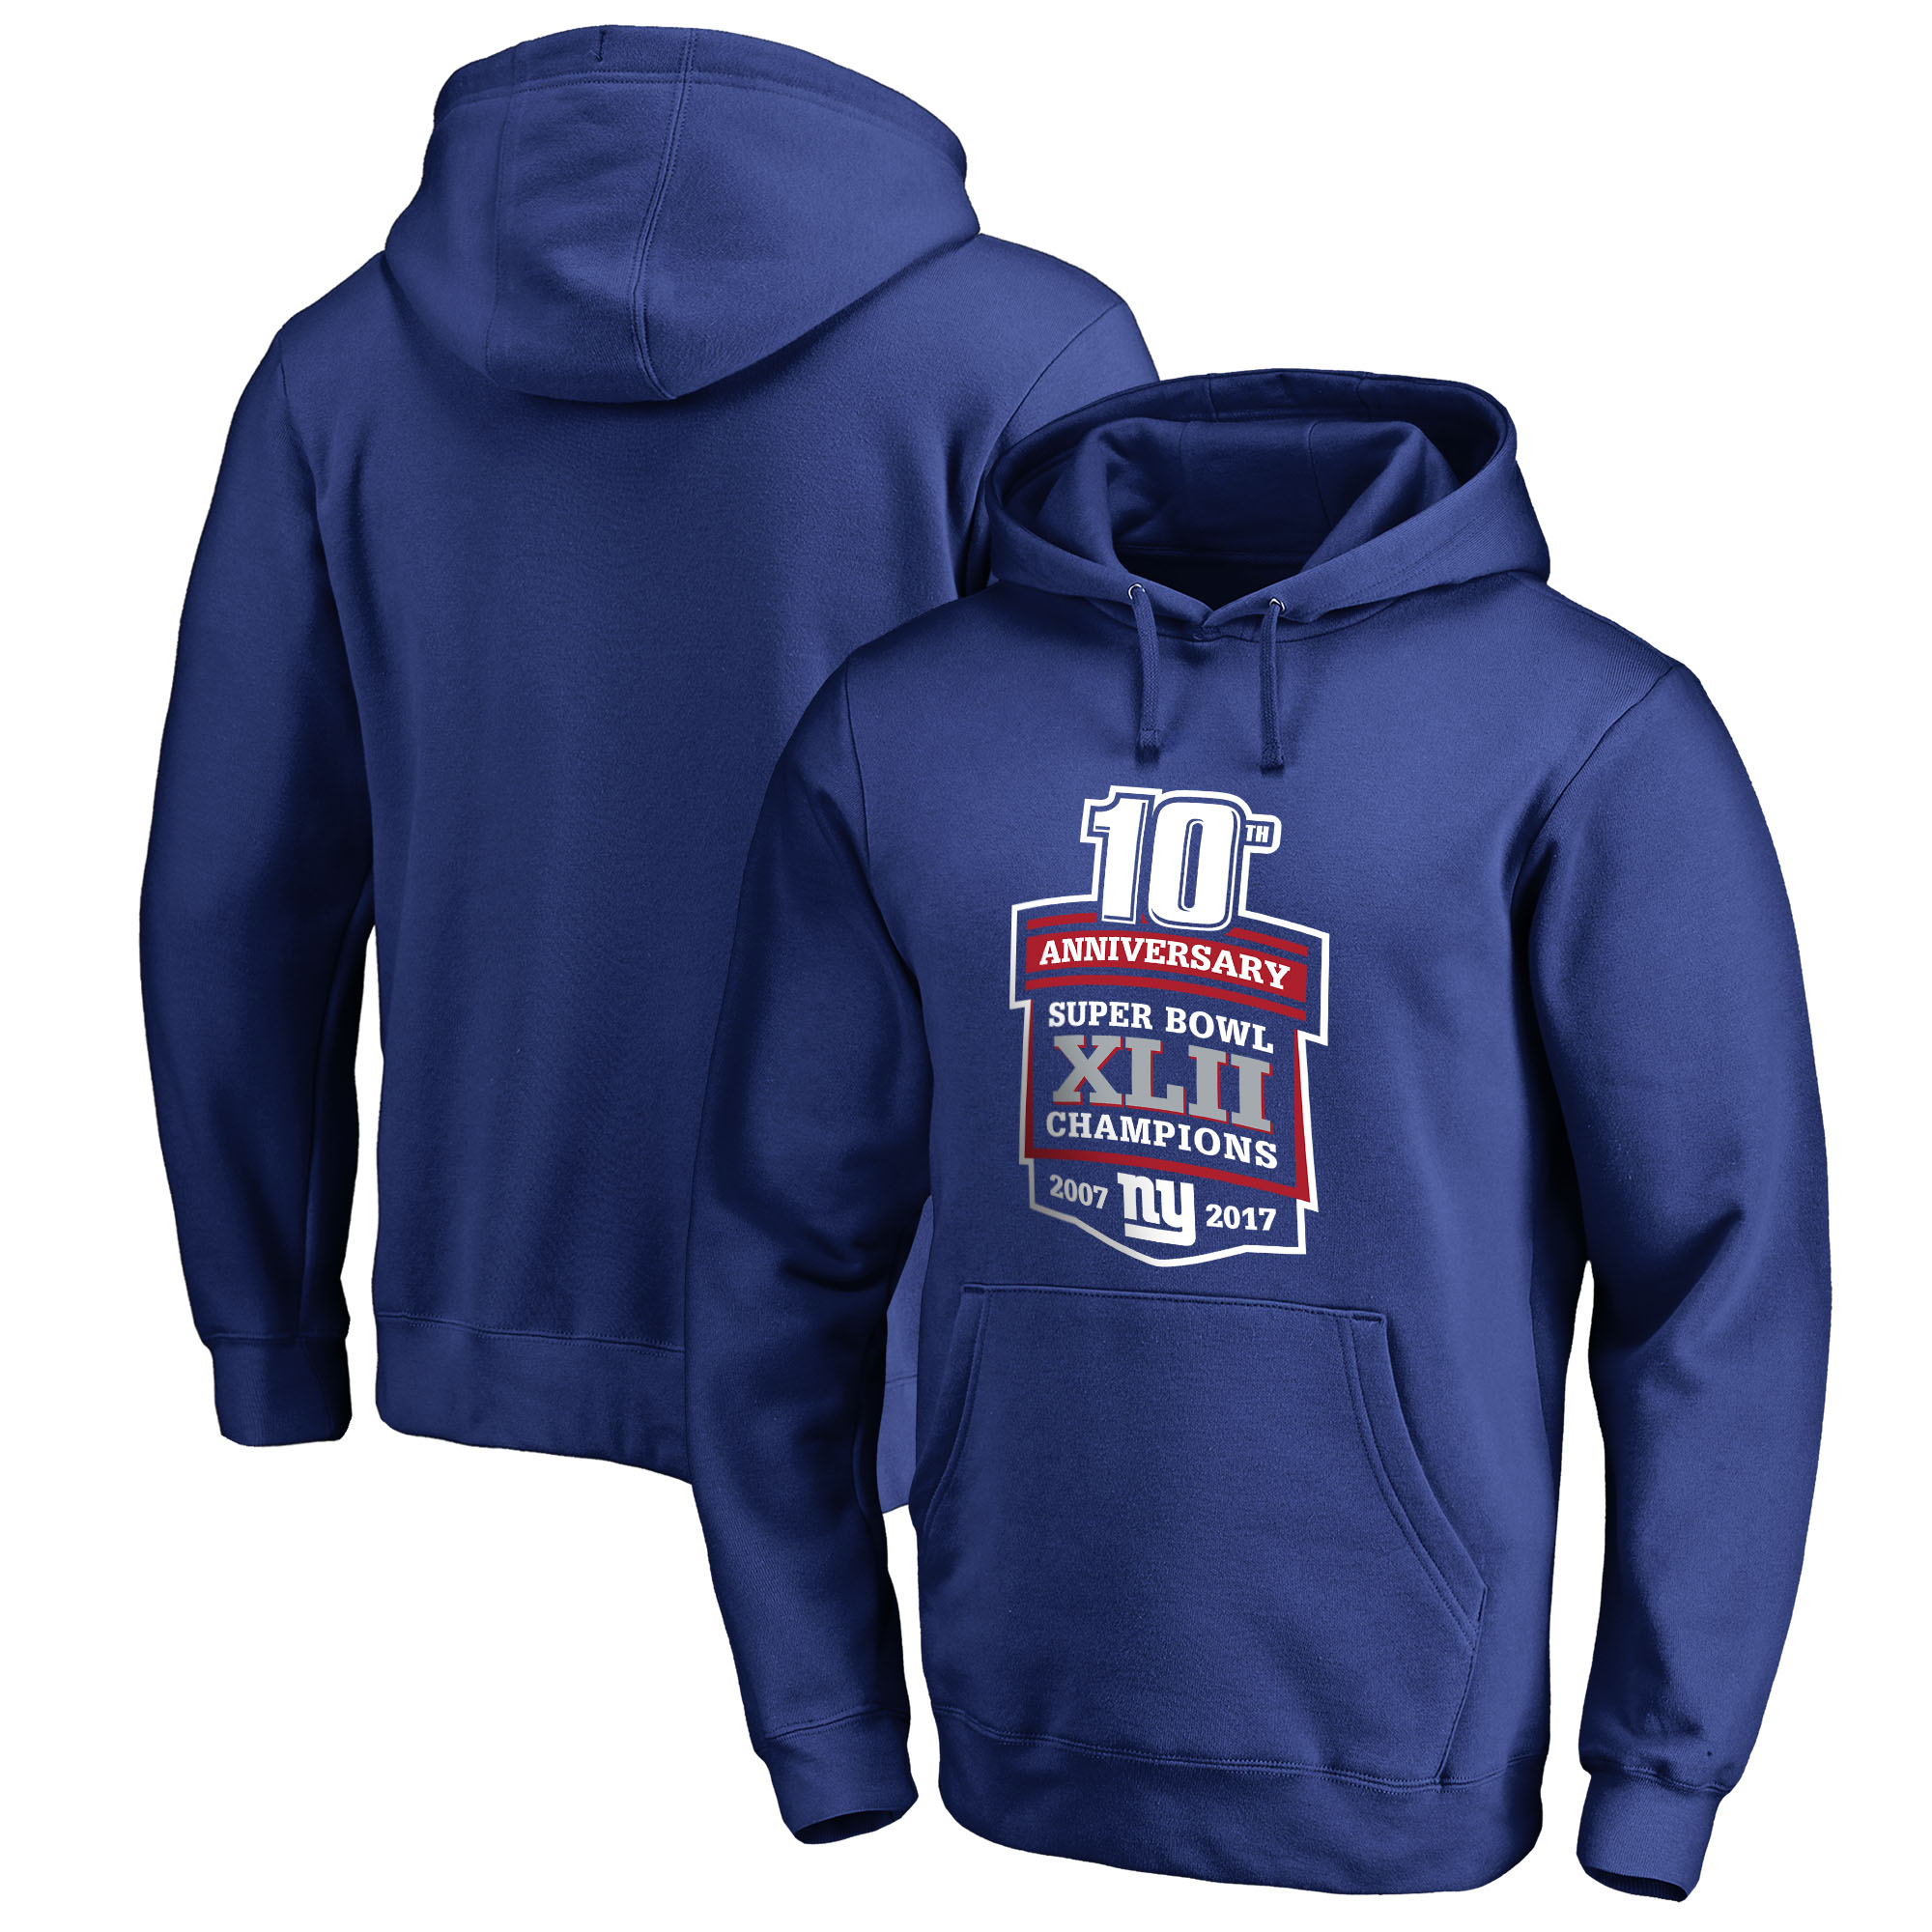 New York Giants NFL Pro Line by Fanatics Branded Super Bowl XLII 10-Year Anniversary Pullover Hoodie - Royal